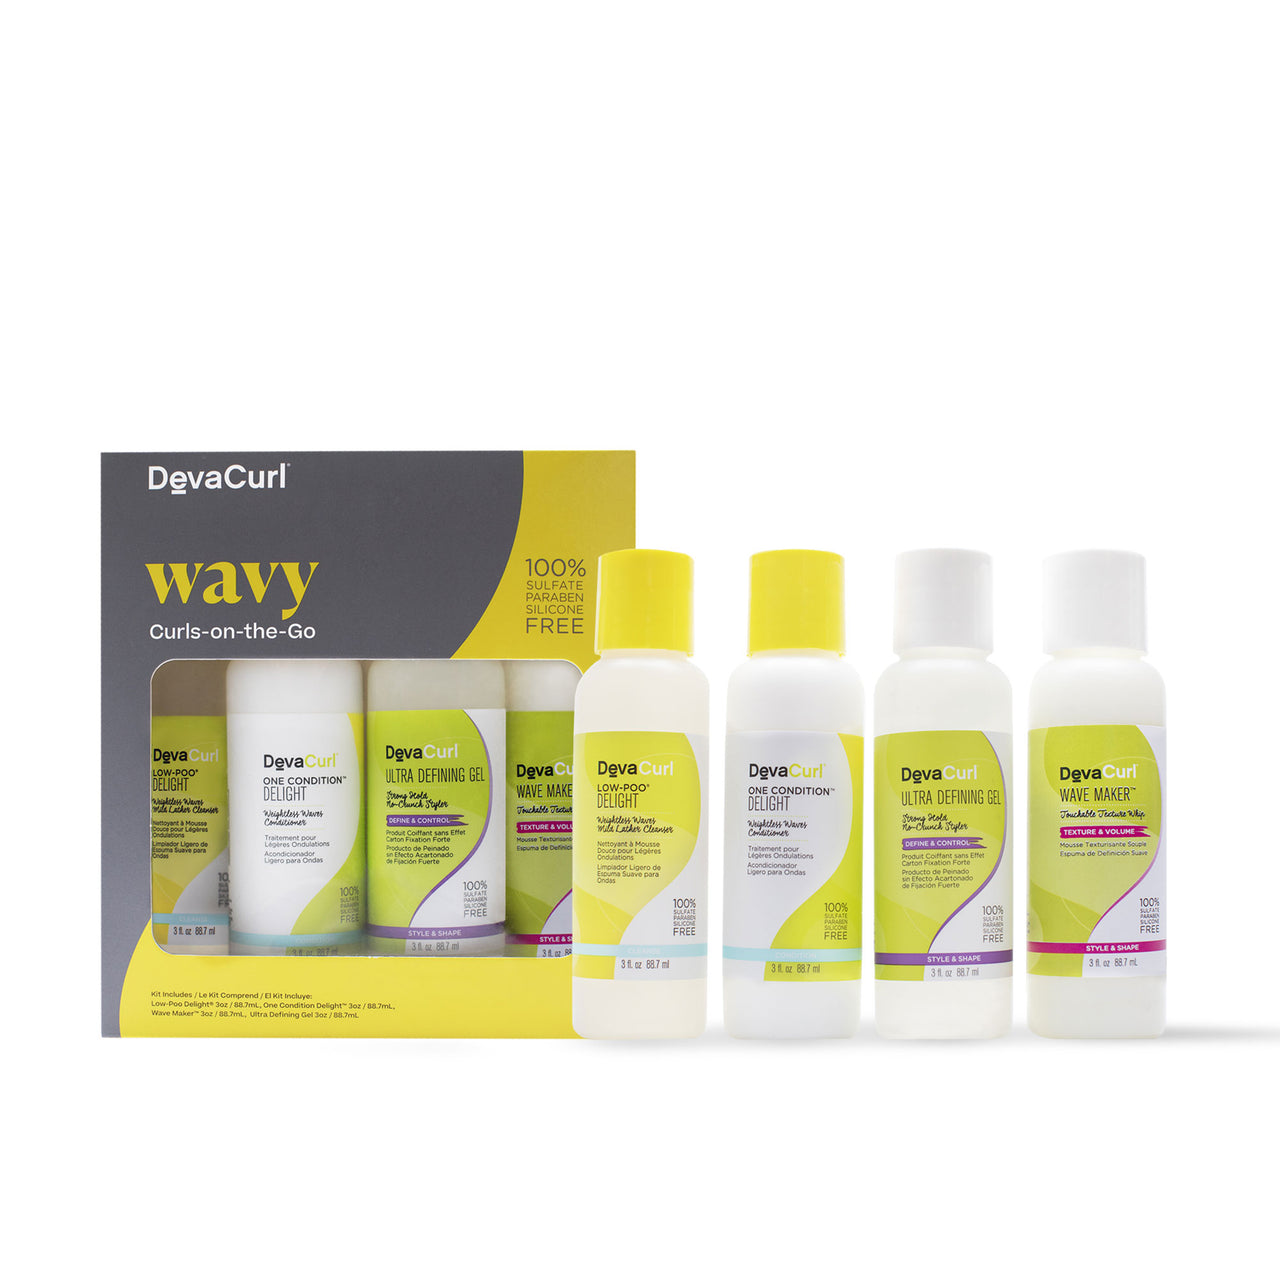 DevaCurl Wavy Curls-on-the-go box and individual bottles version 1